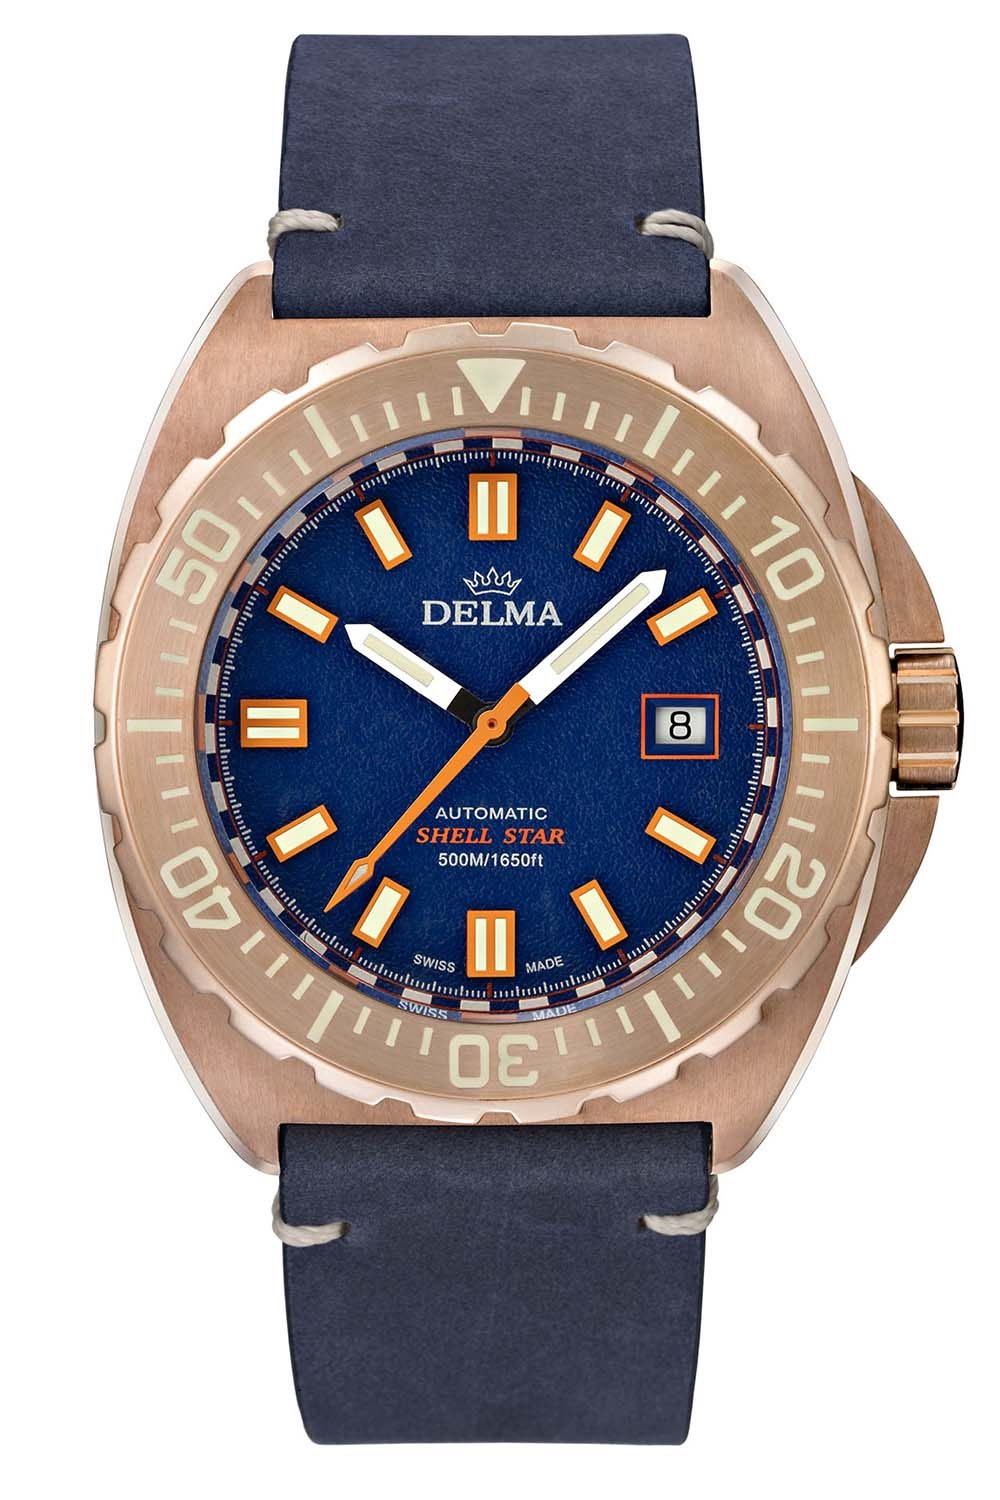 Delma Shell Star Bronze Limited Edition